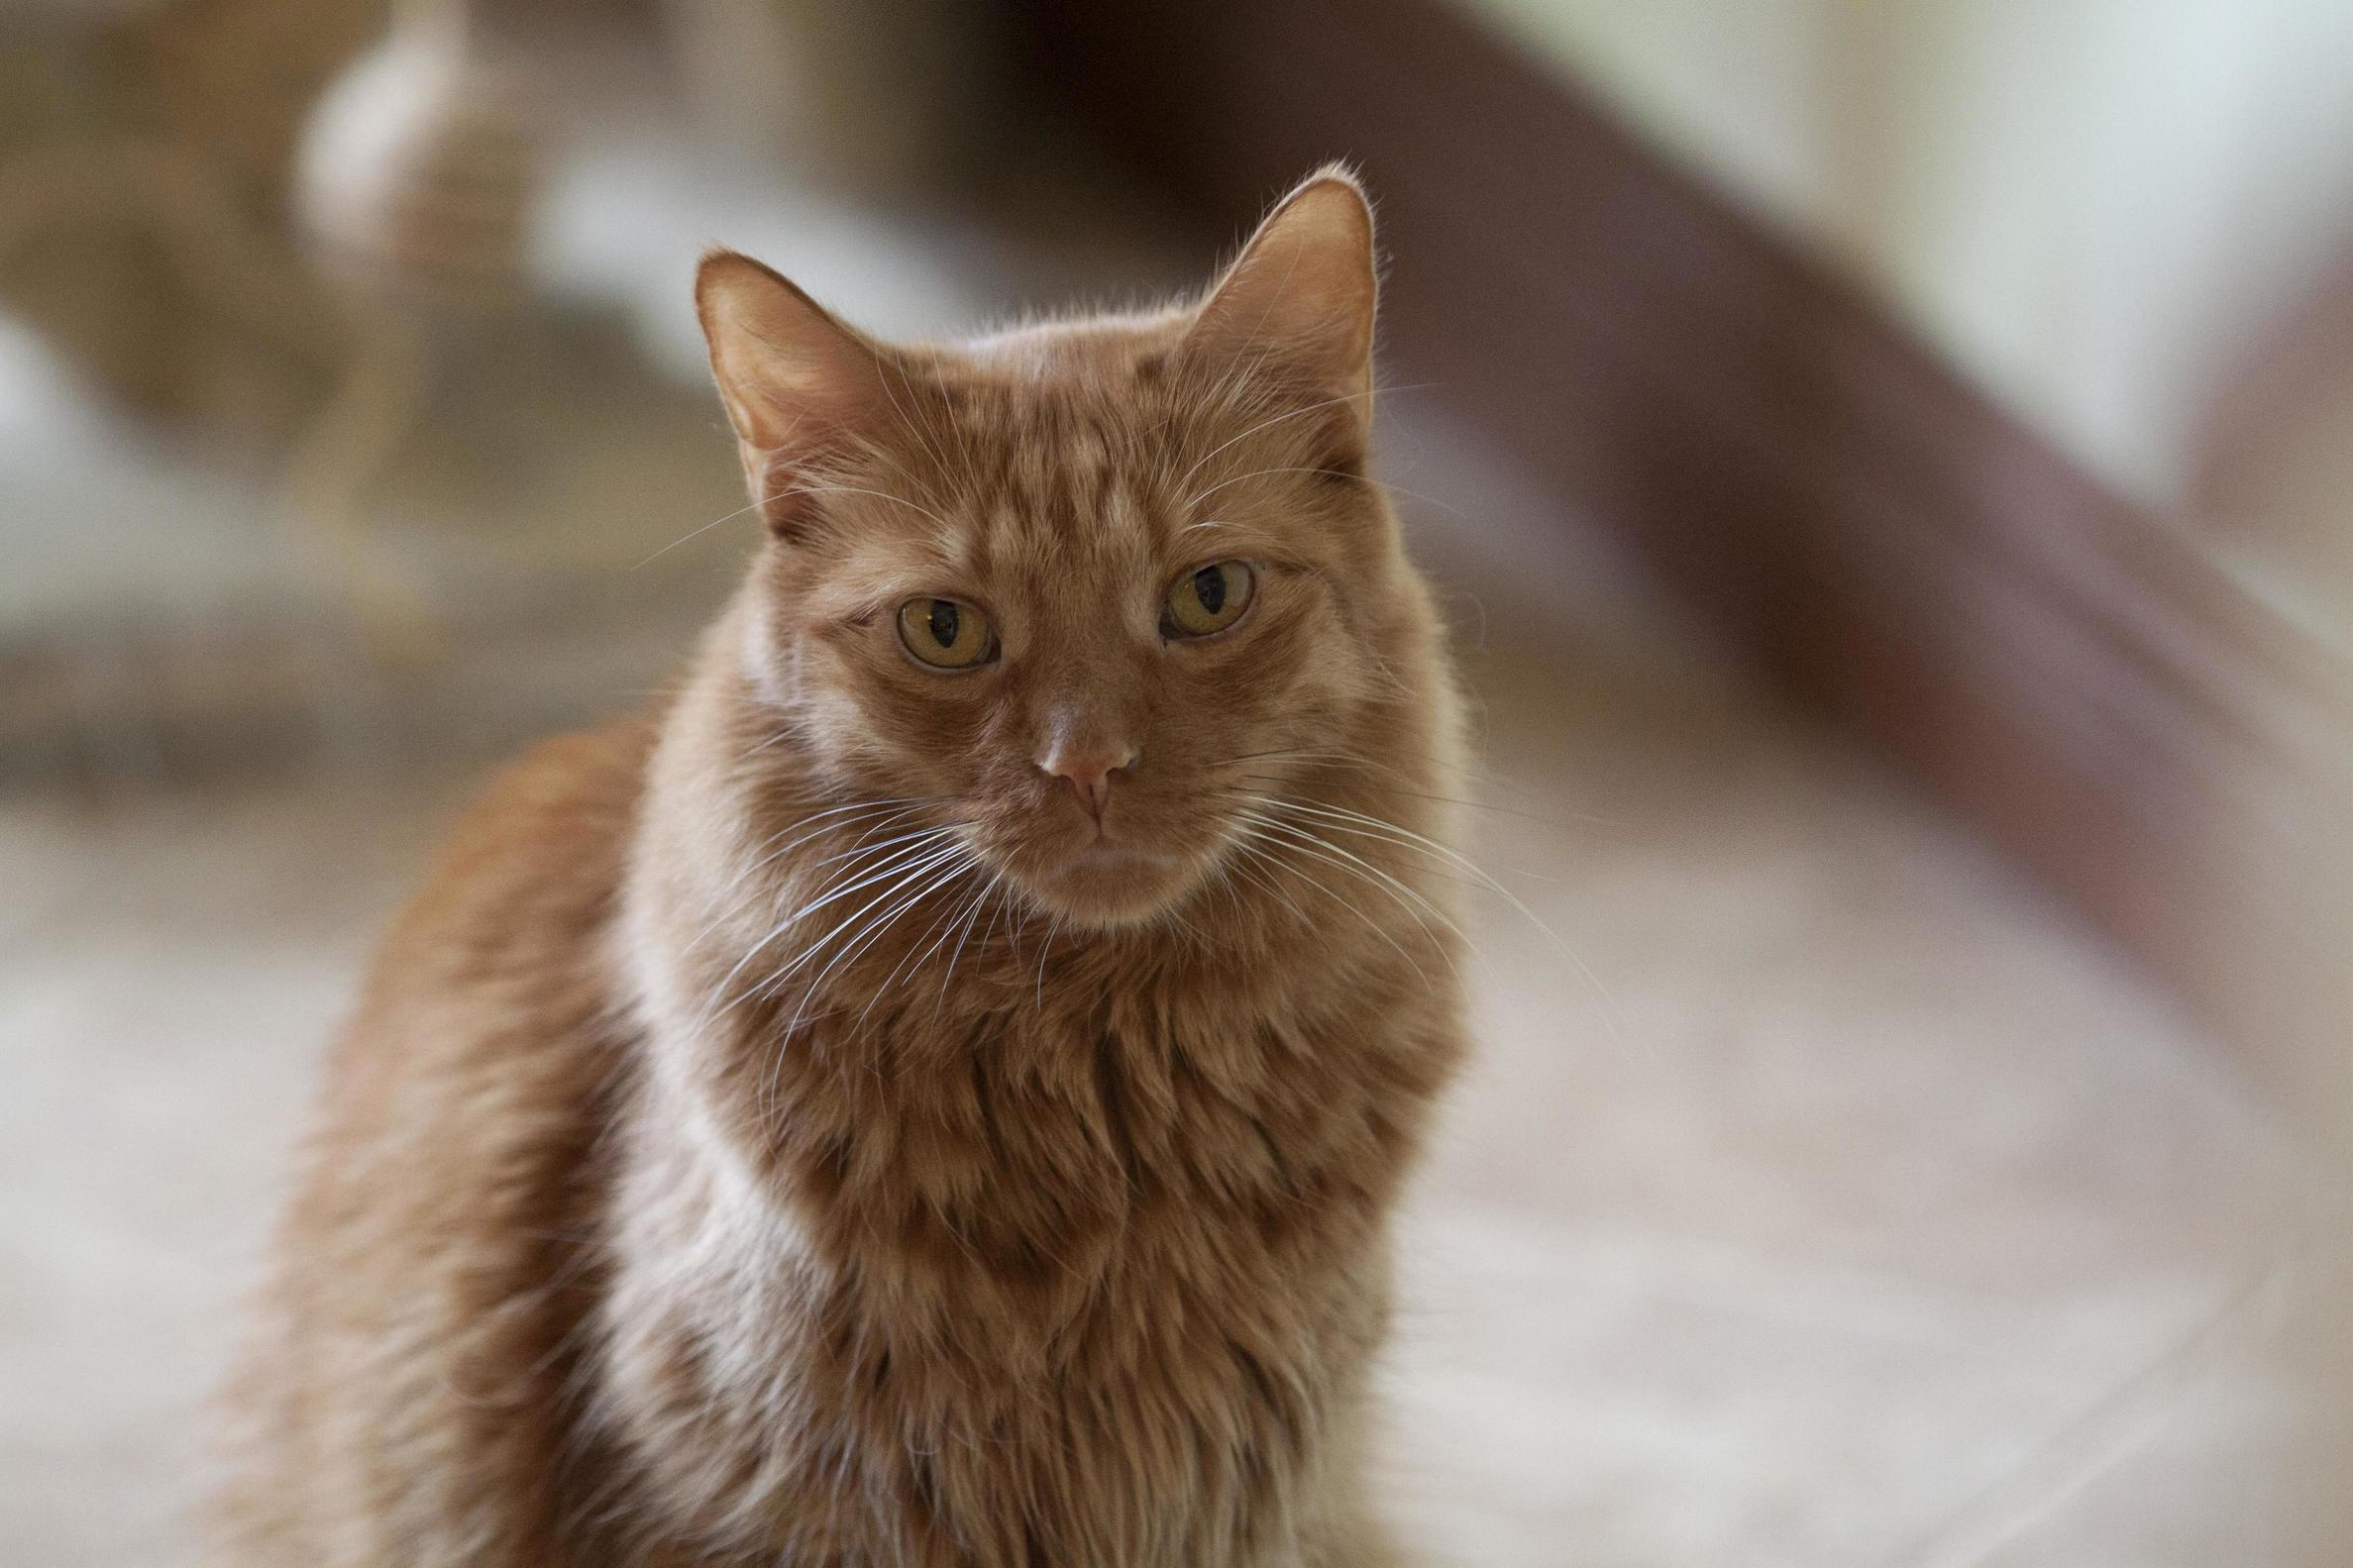 My handsome boy pumpkin left me today at the age of only 9. i am heartbroken.